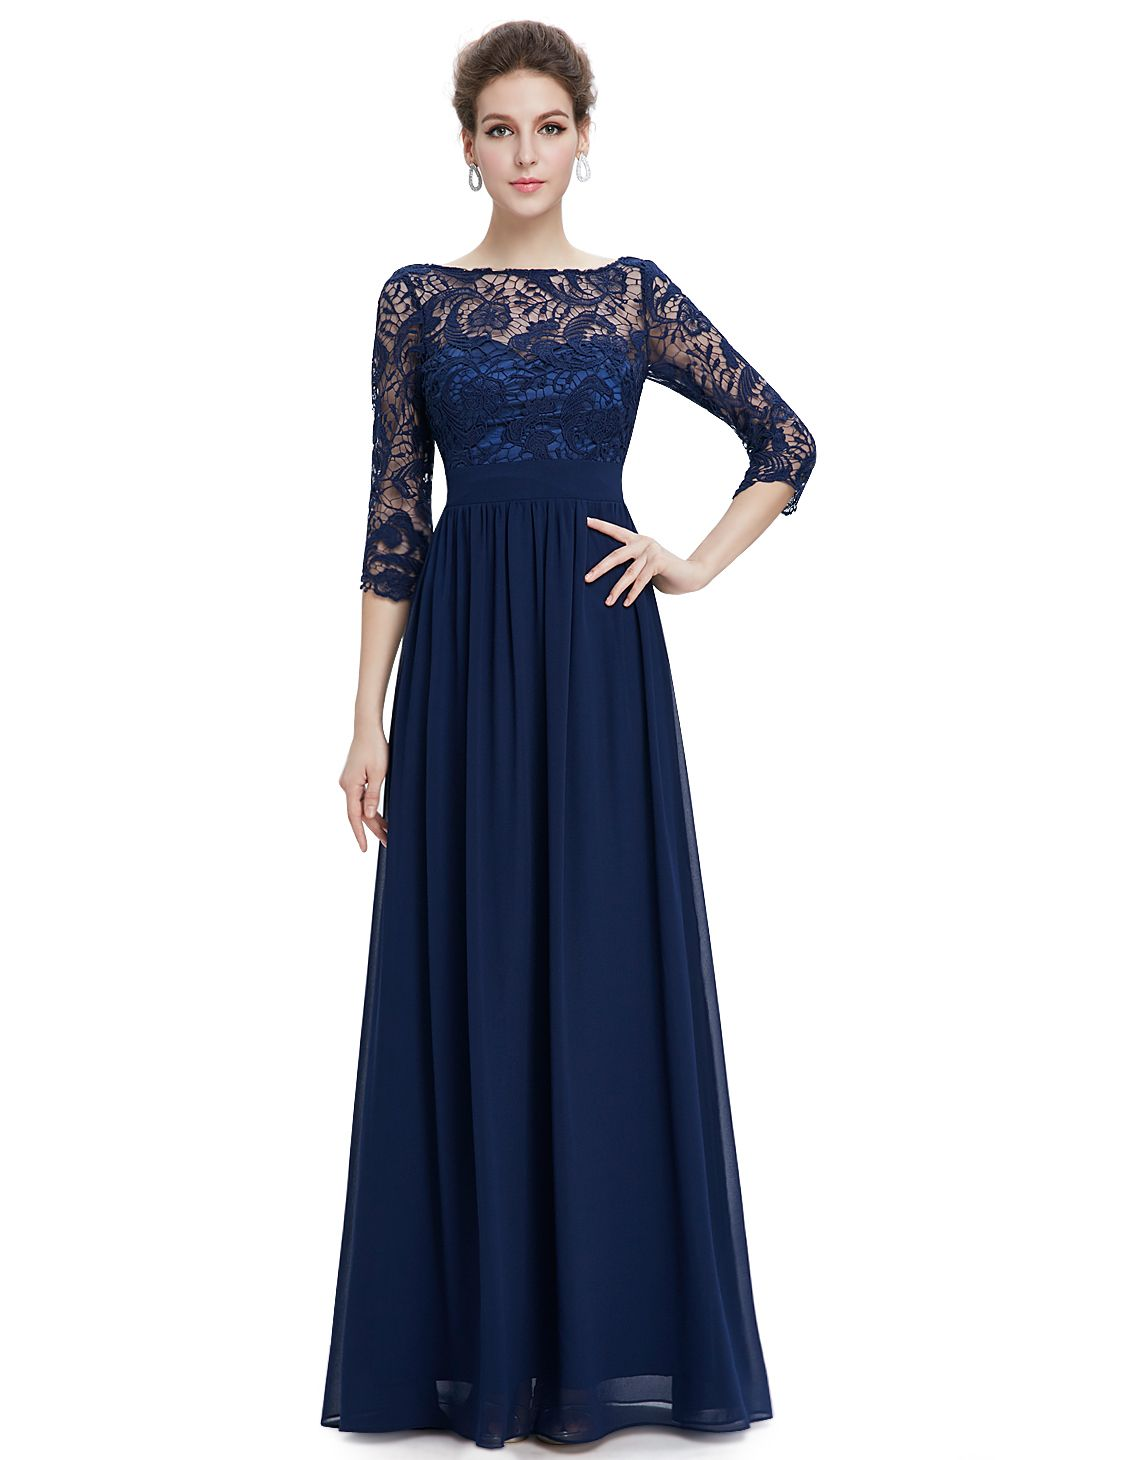 Navy Blue Long Lace Dress Love This Long Lace Evening Dress Com Imagens Vestidos Compridos Vestidos Vestido De Baile Longo